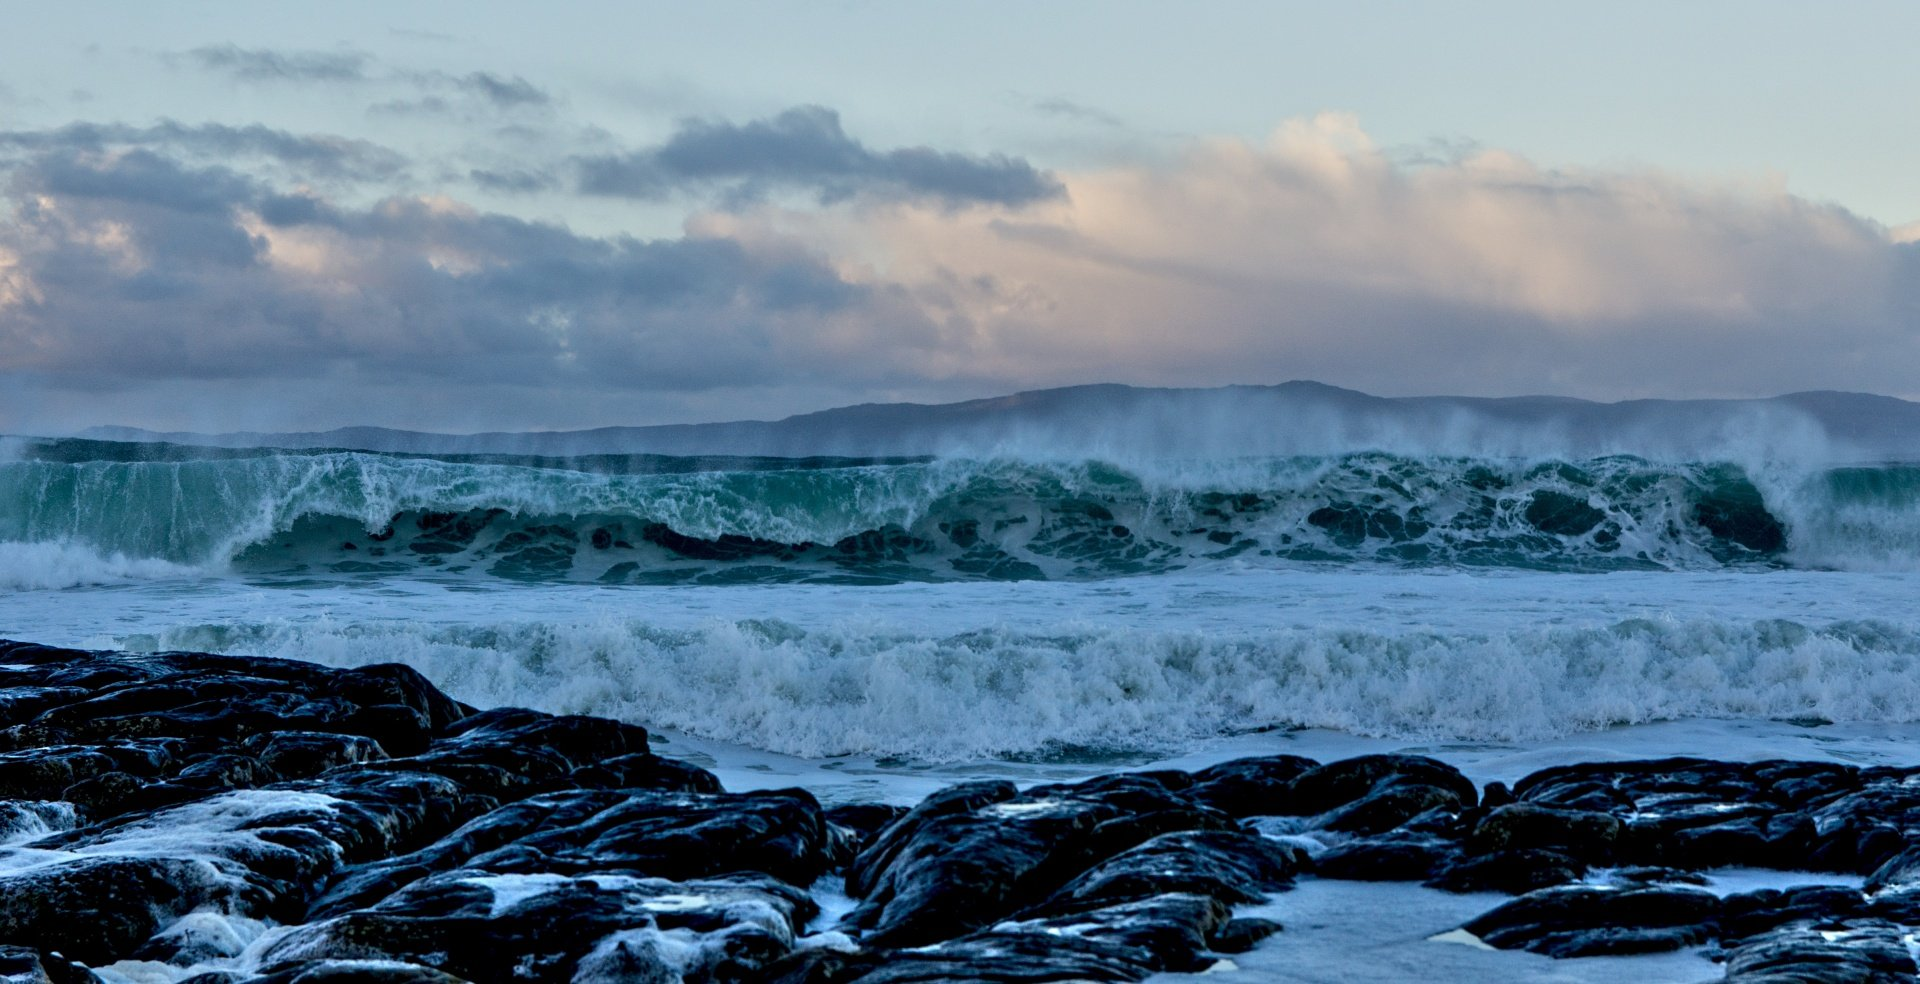 OShea photo.art's photo of Bundoran - The Peak